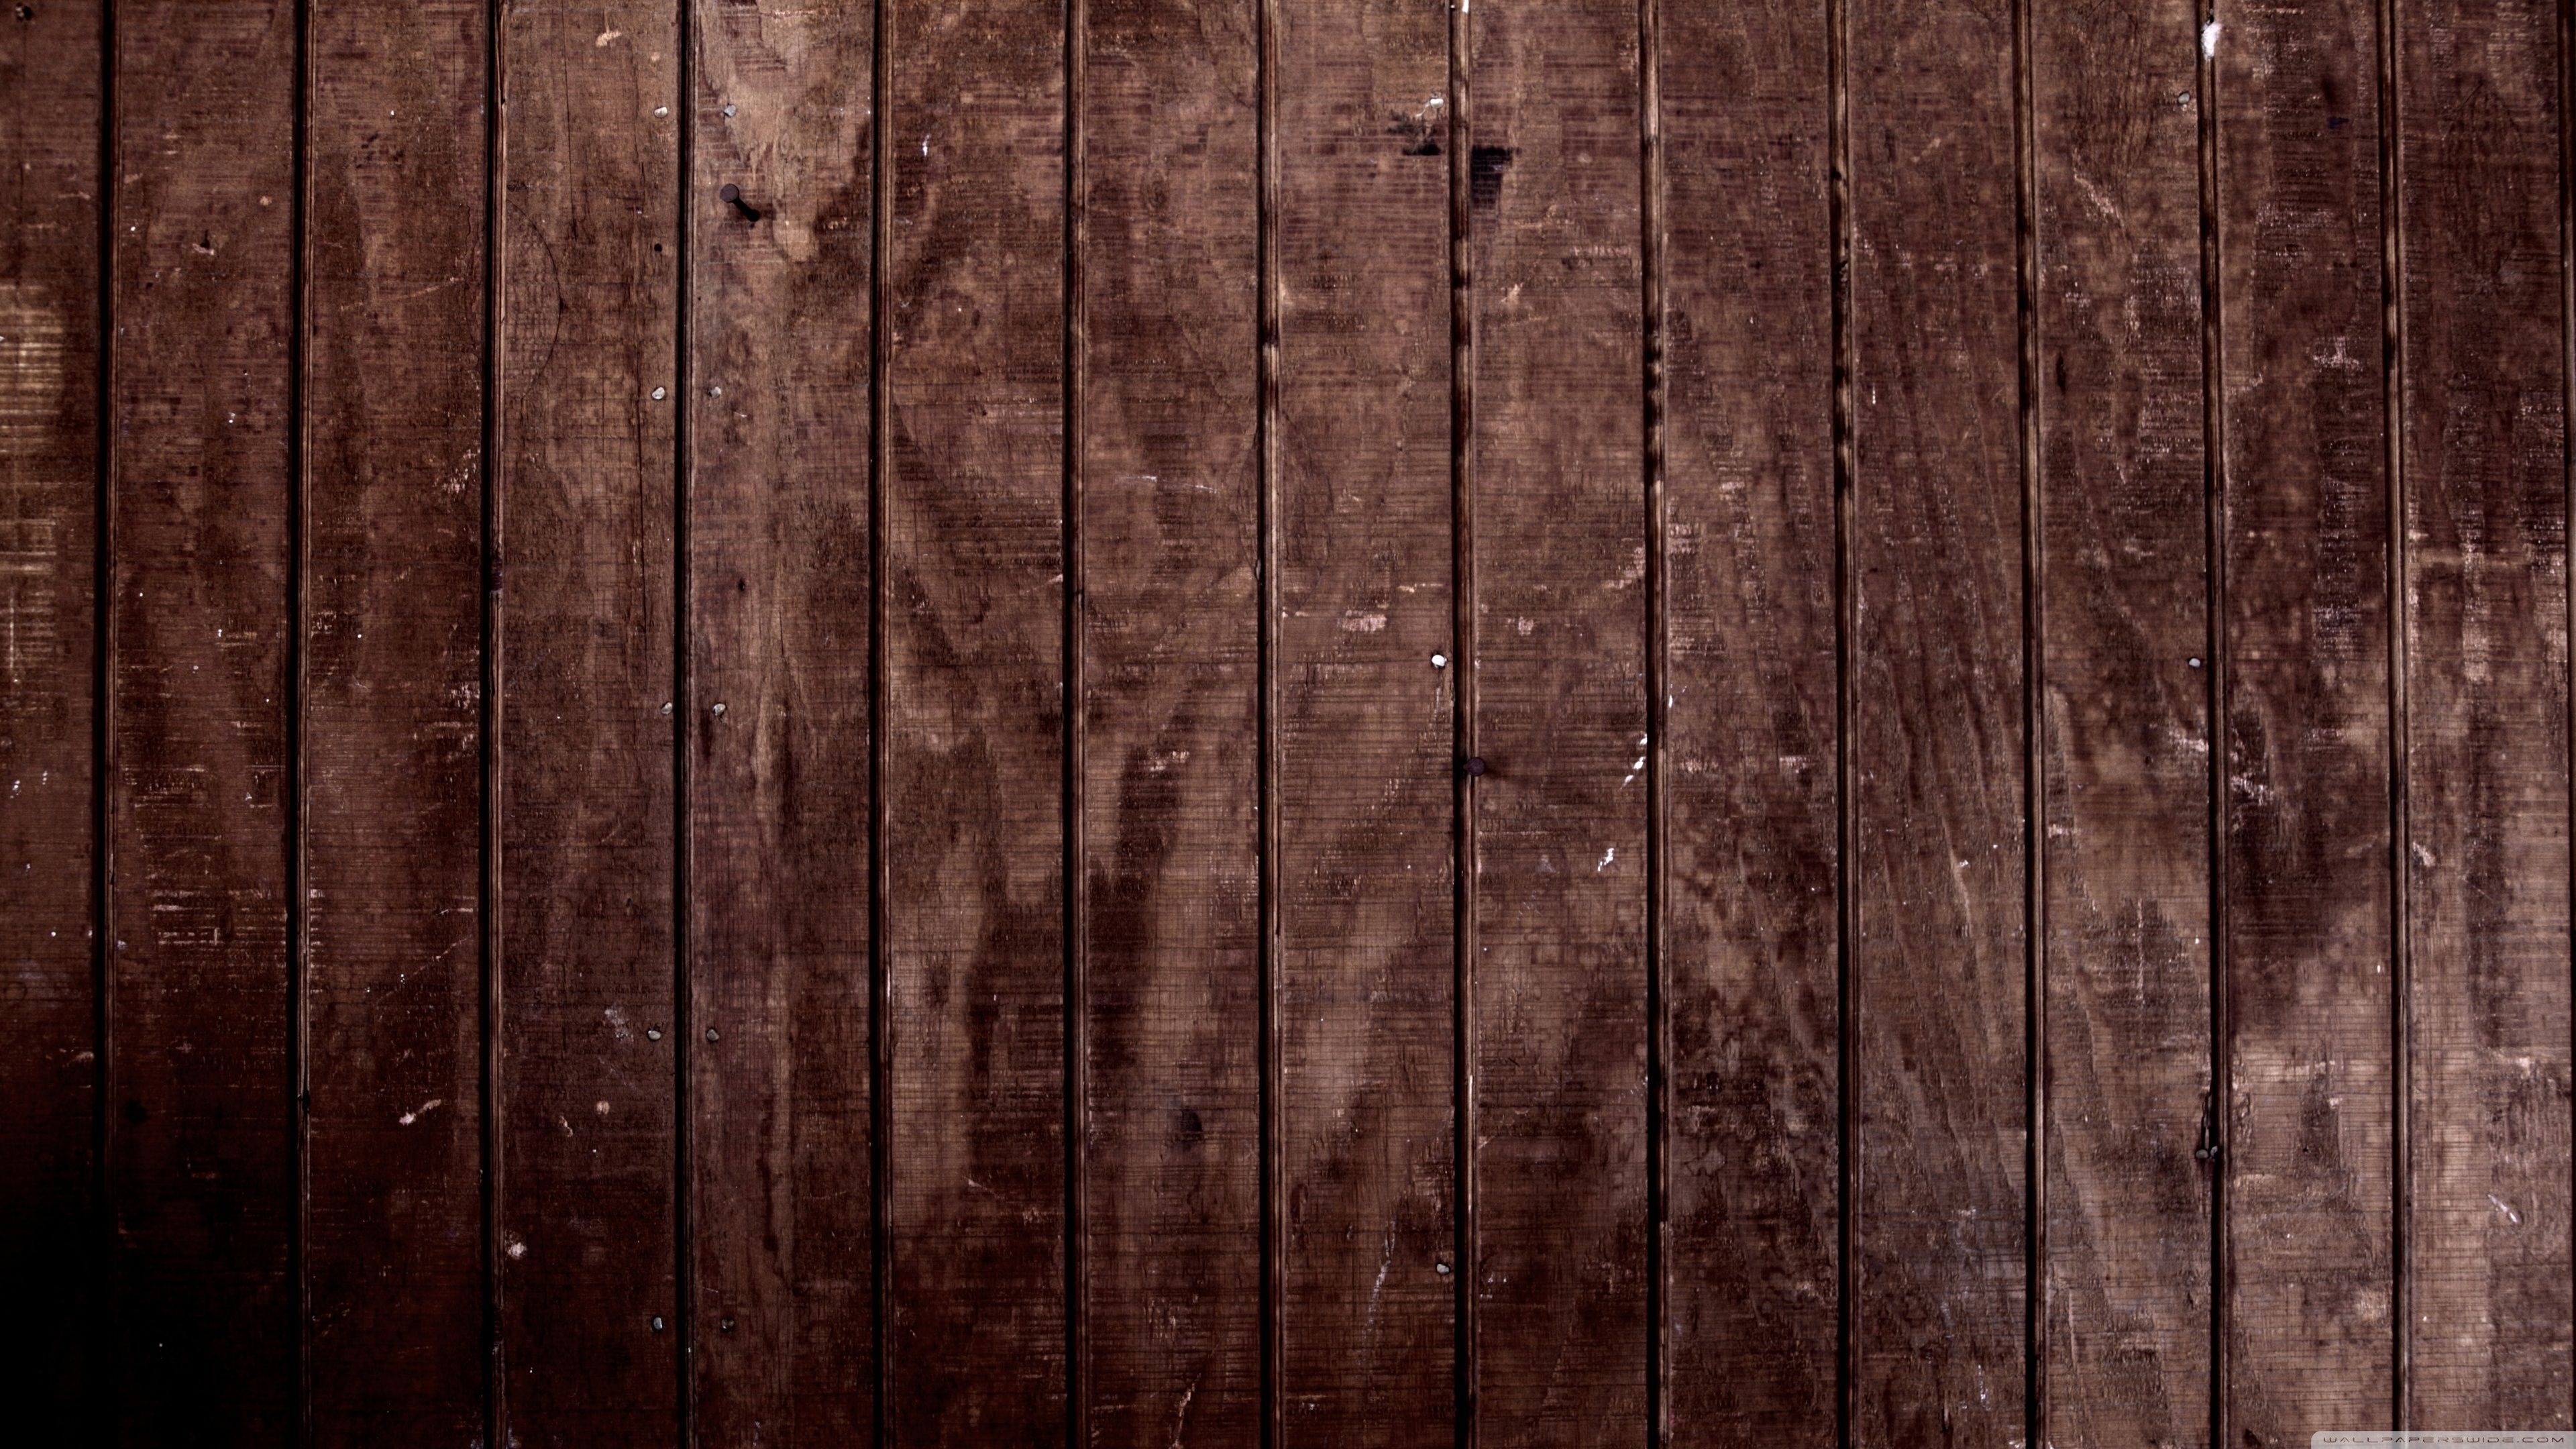 Wood 4K Wallpapers - Los mejores fondos de Wood 4K gratis - WallpaperAccess